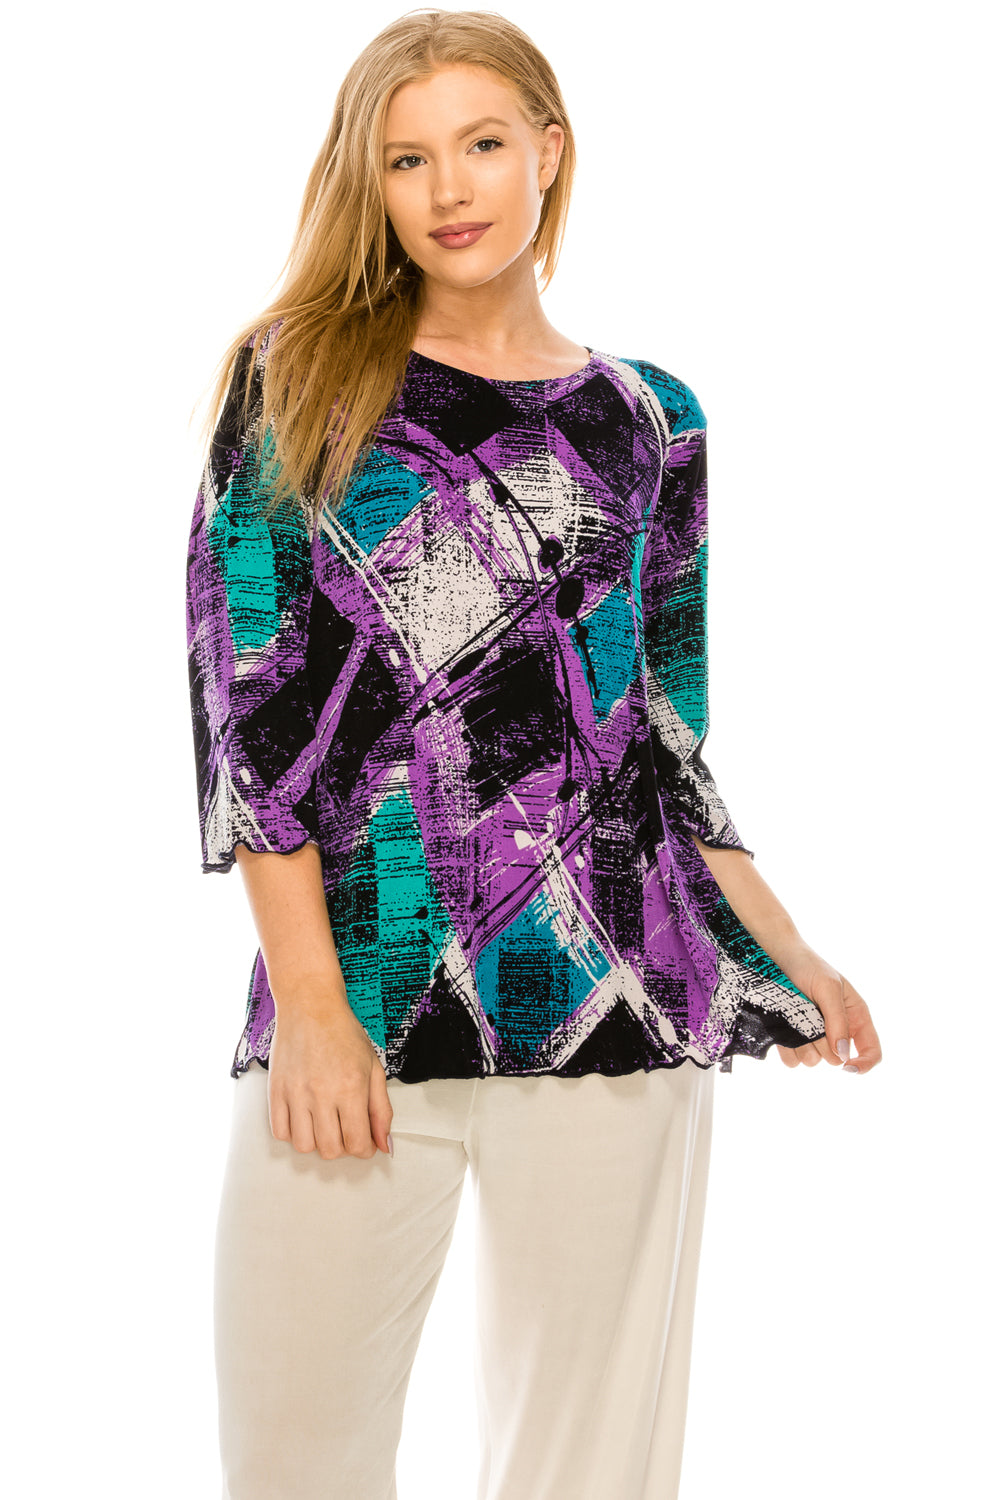 Jostar Women's Stretchy Merrow Top 3/4 Sleeve Print Plus, 158BN-QXP-W180 - Jostar Online